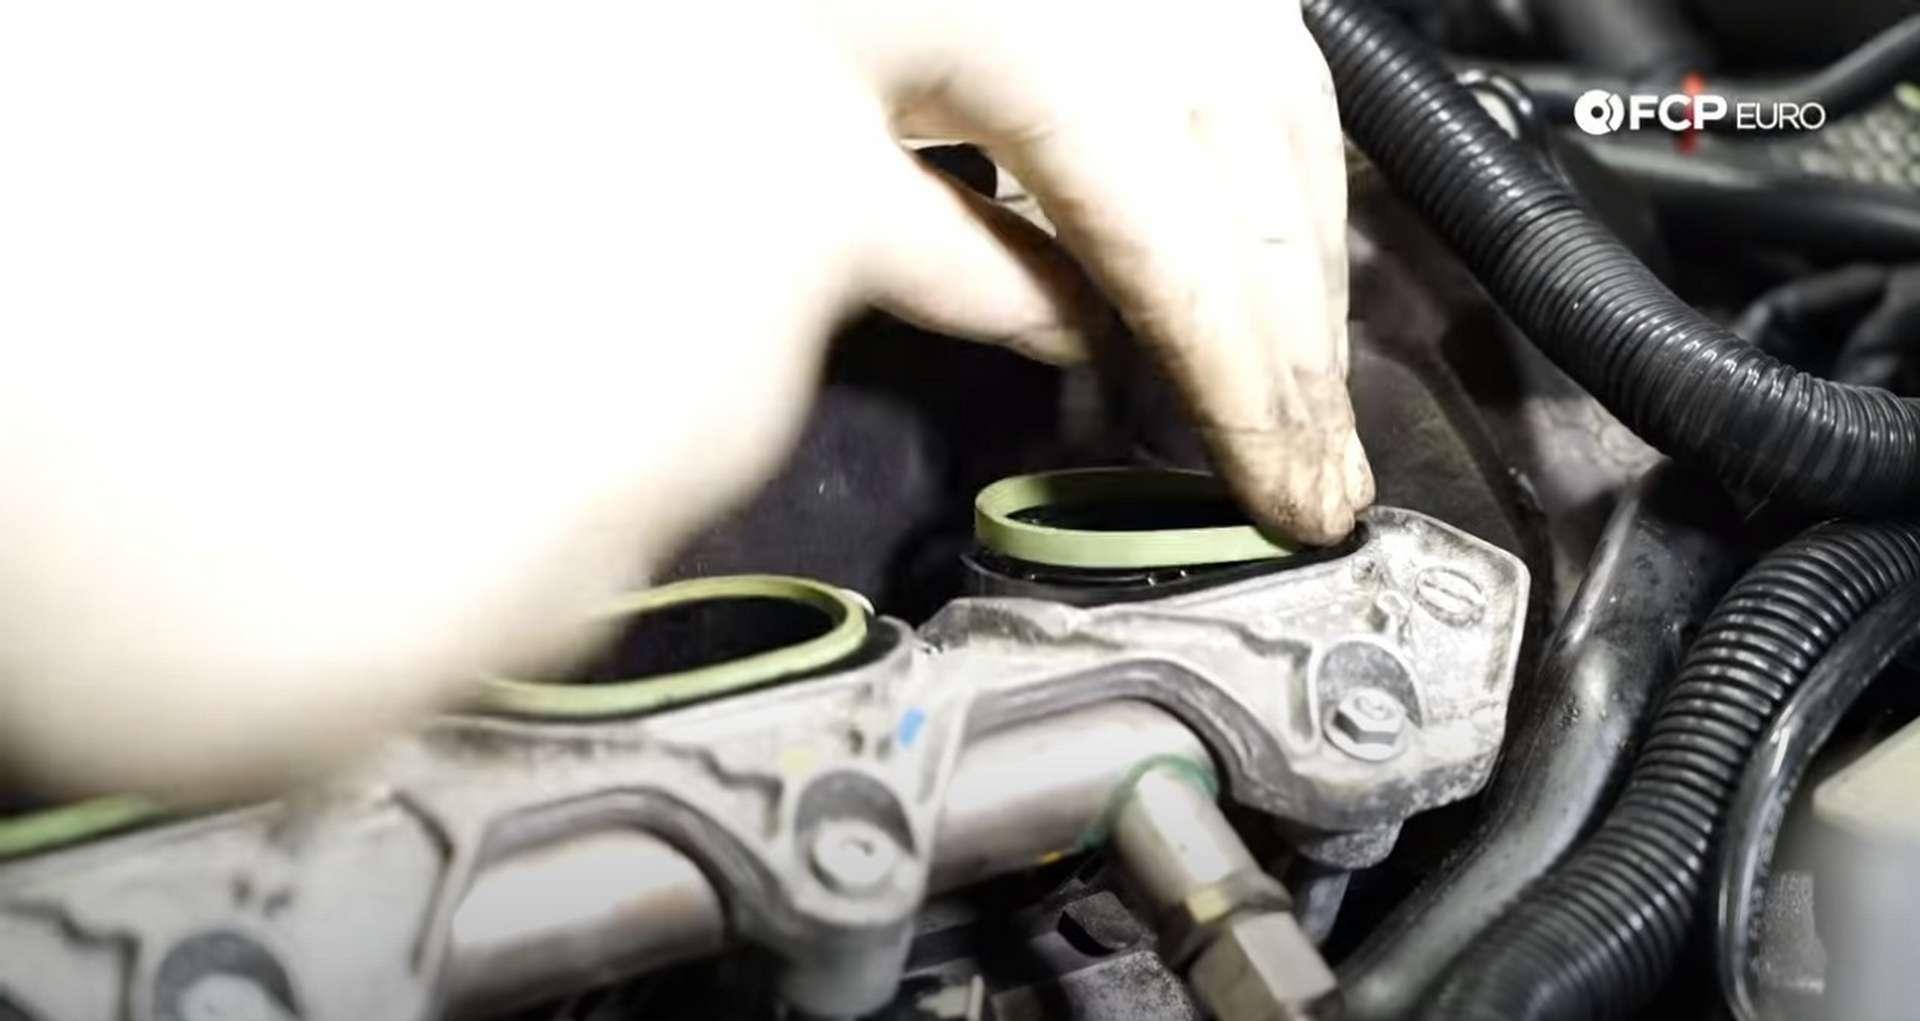 DIY Audi 3.0T Supercharger Oil Change installing the new supercharger gaskets